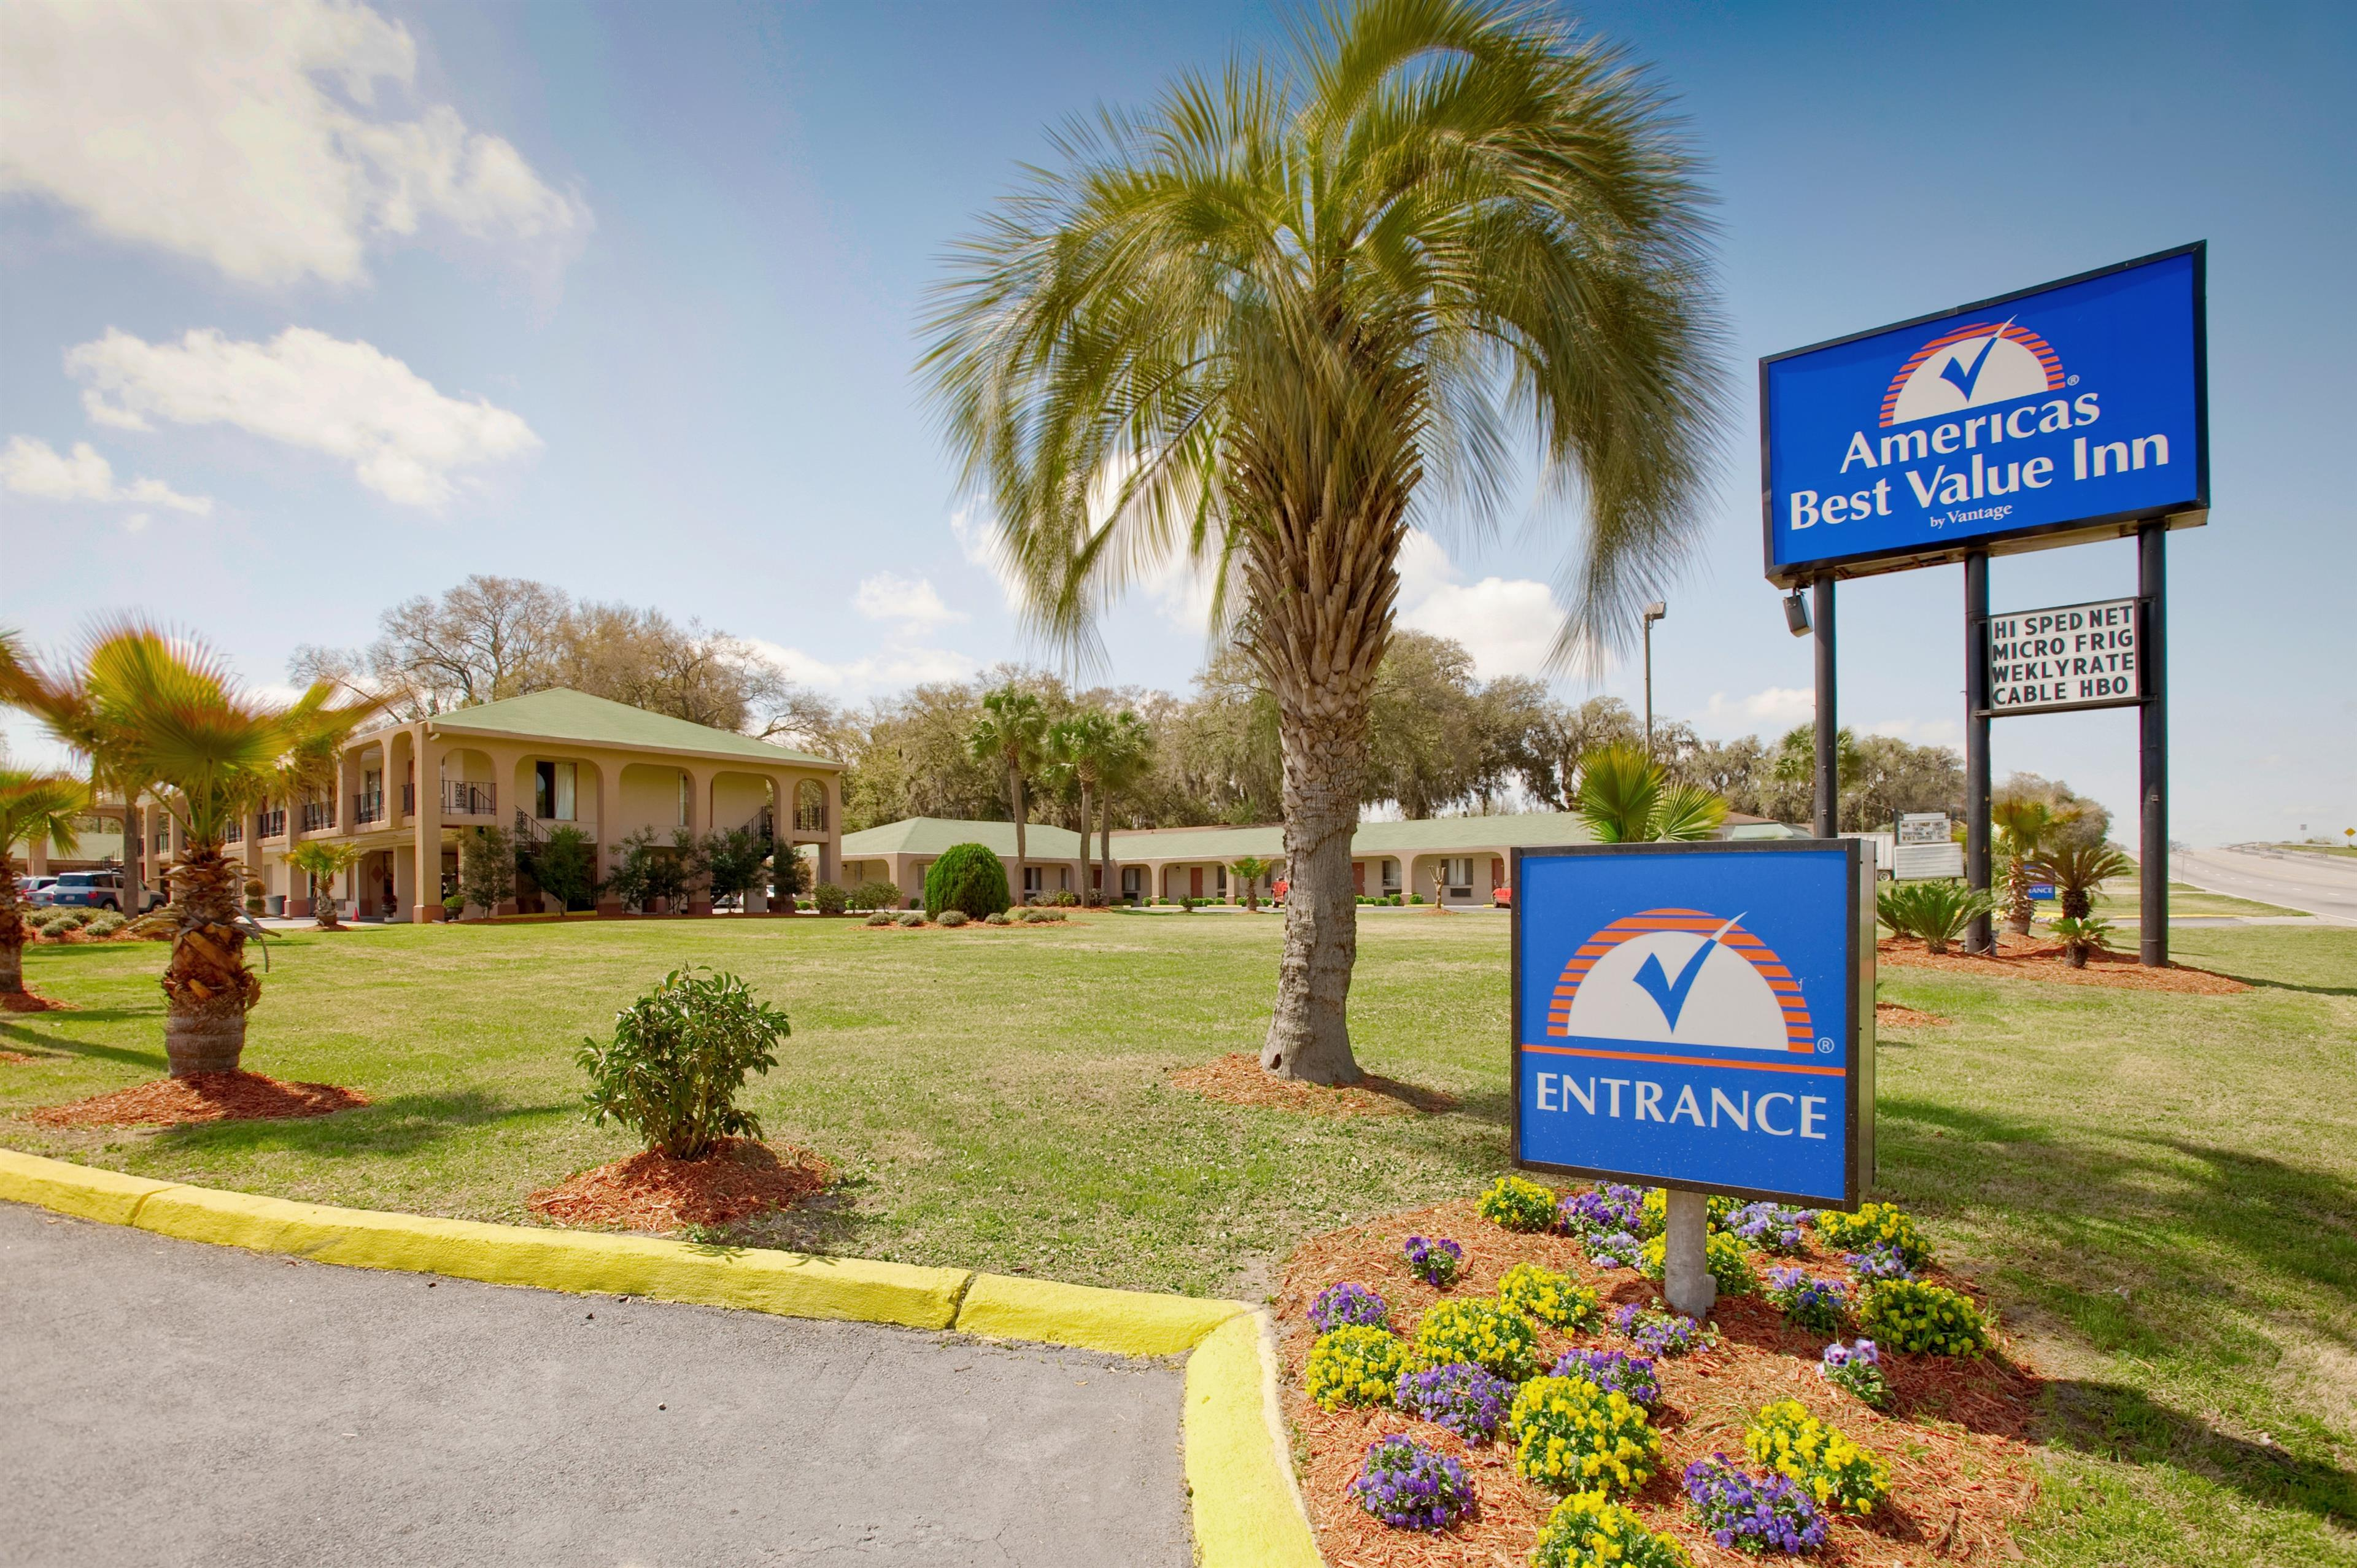 Americas best value inn savannah coupons near me in for Americas best coupons